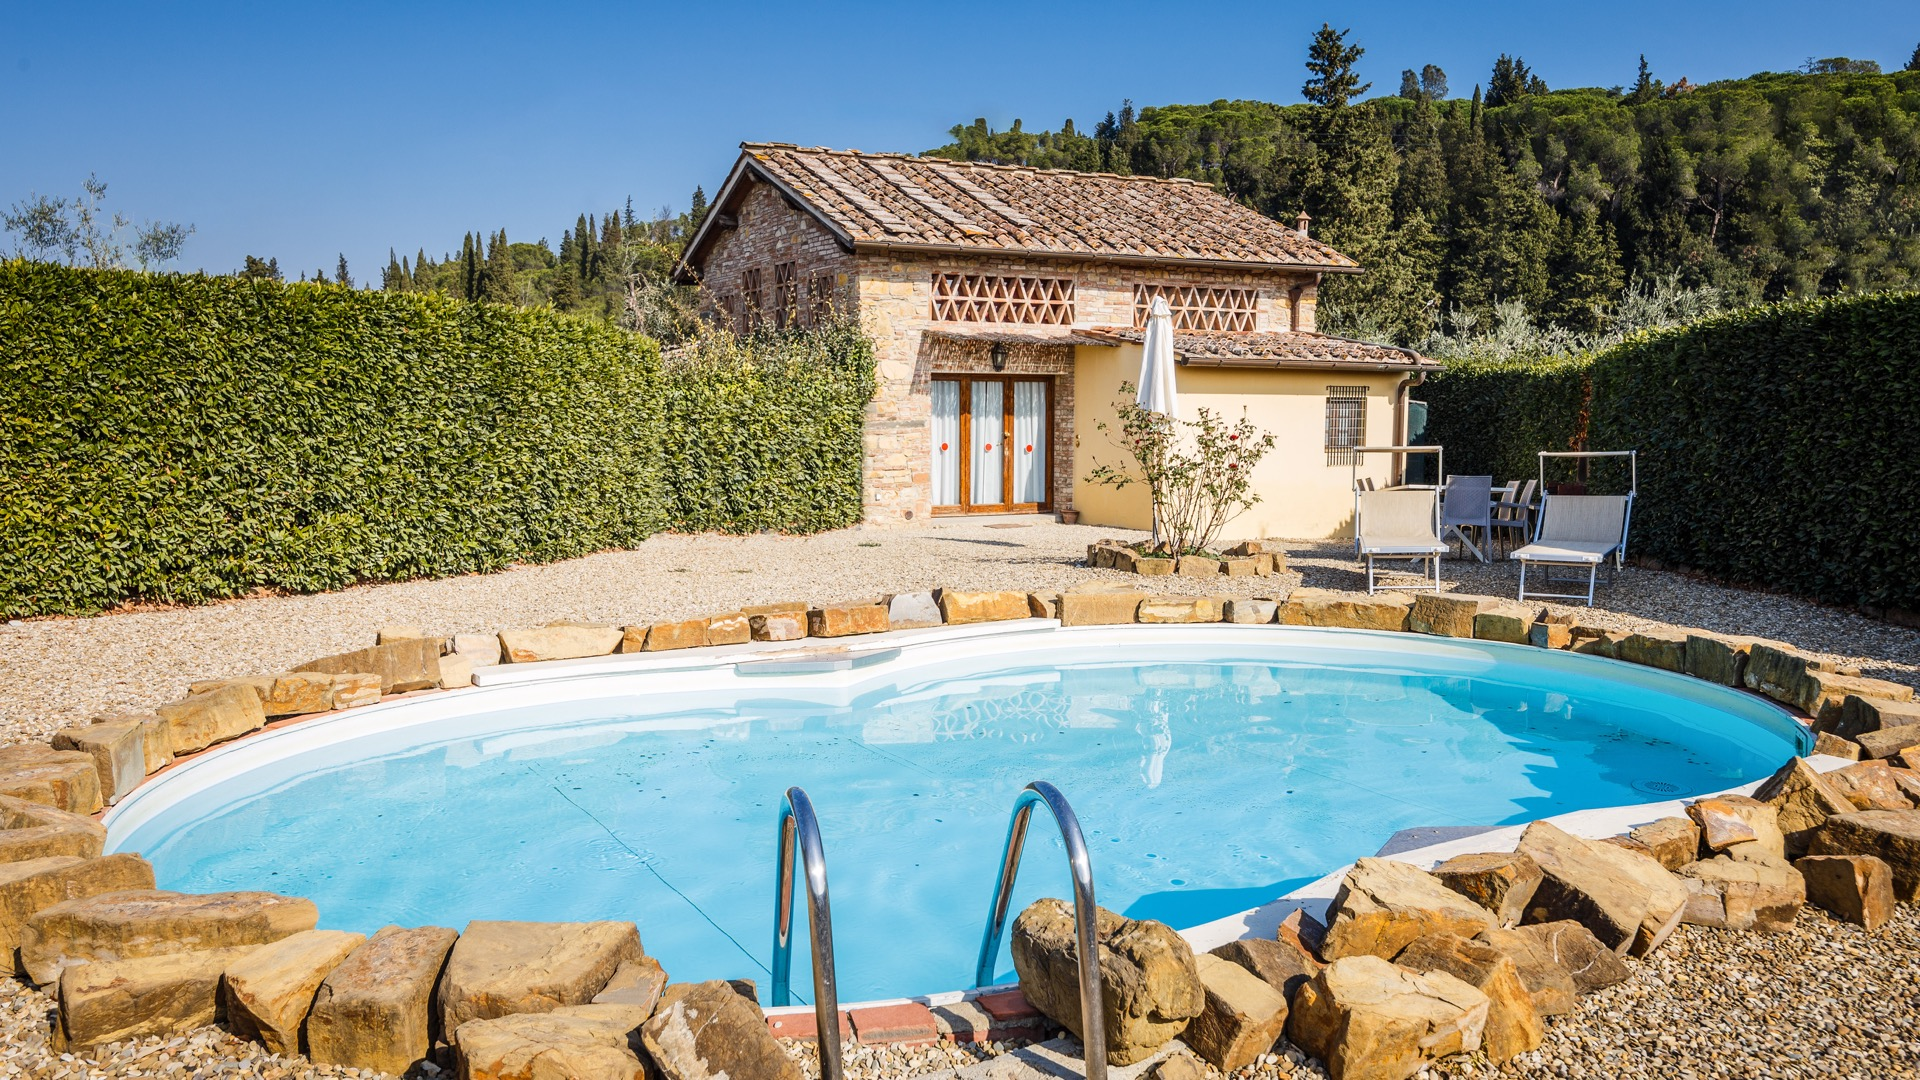 Resort relais villa olmo chianti villas for Anda garden pool villas